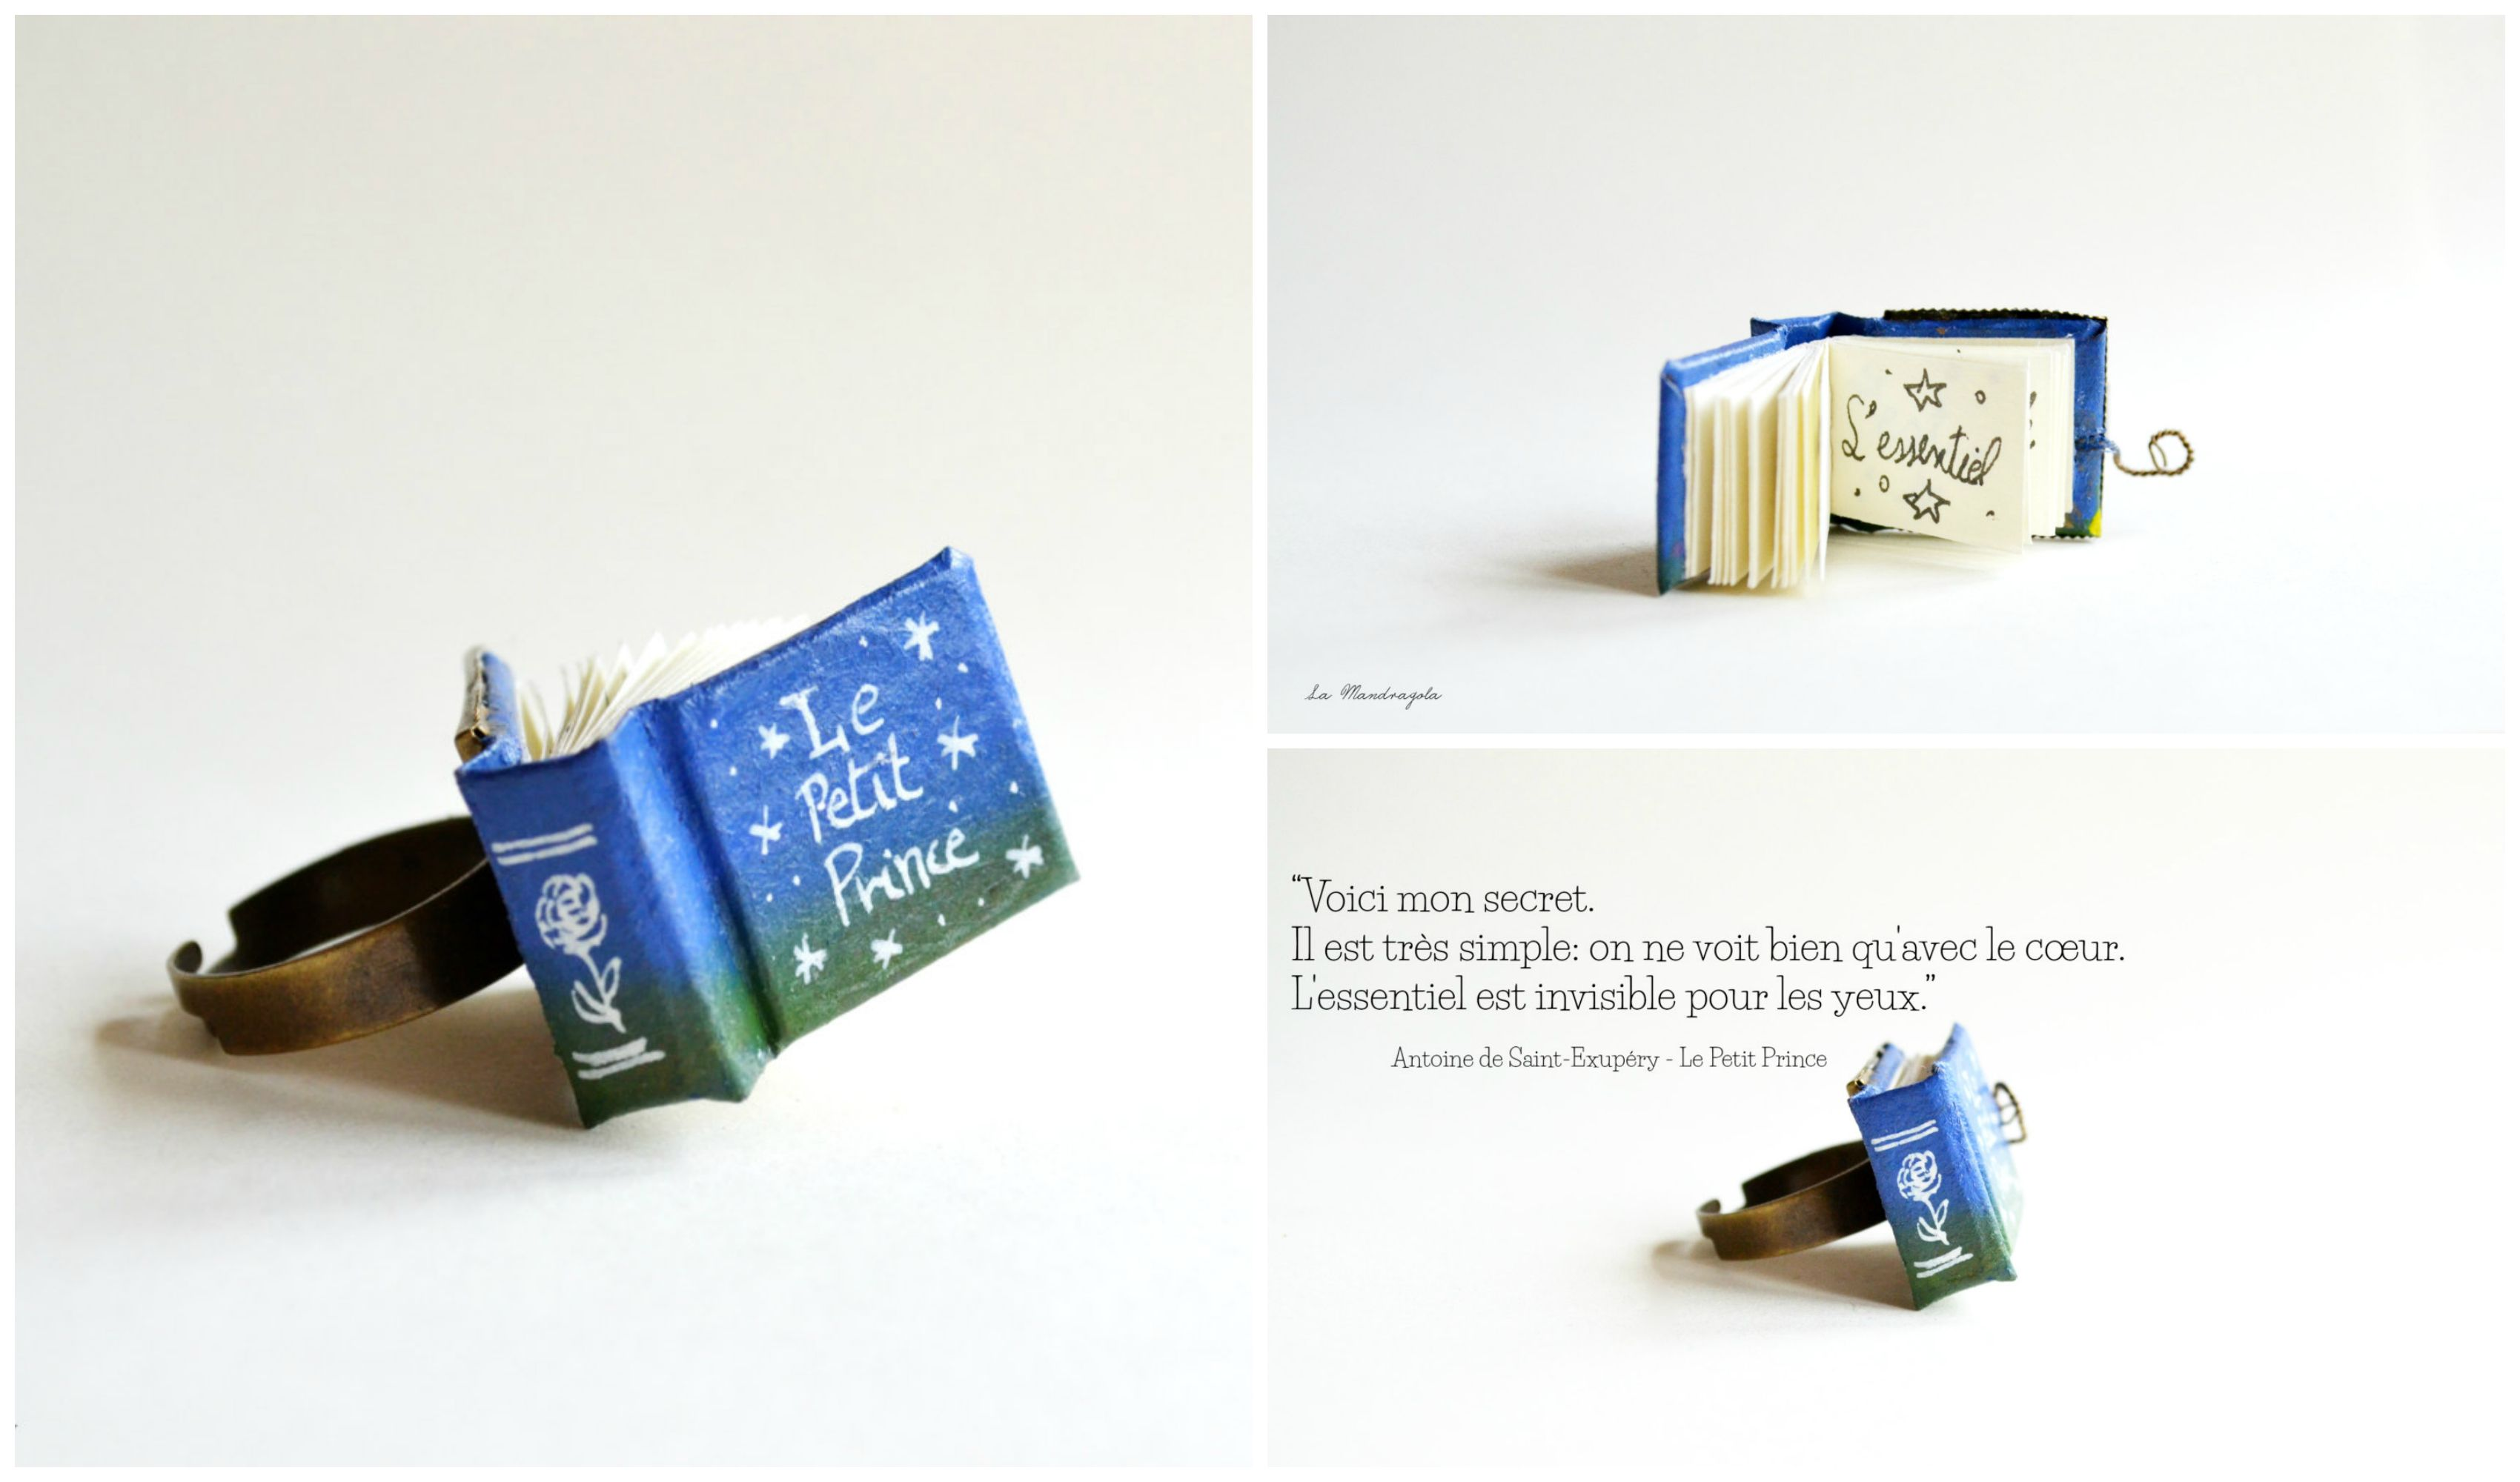 On Ne Voit Bien Qu Avec Le Coeur Saint Exupery The Little Prince Blue Green Miniature Tiny Book Ring With A French Quote Book Accessories Book Jewelry Book Rings